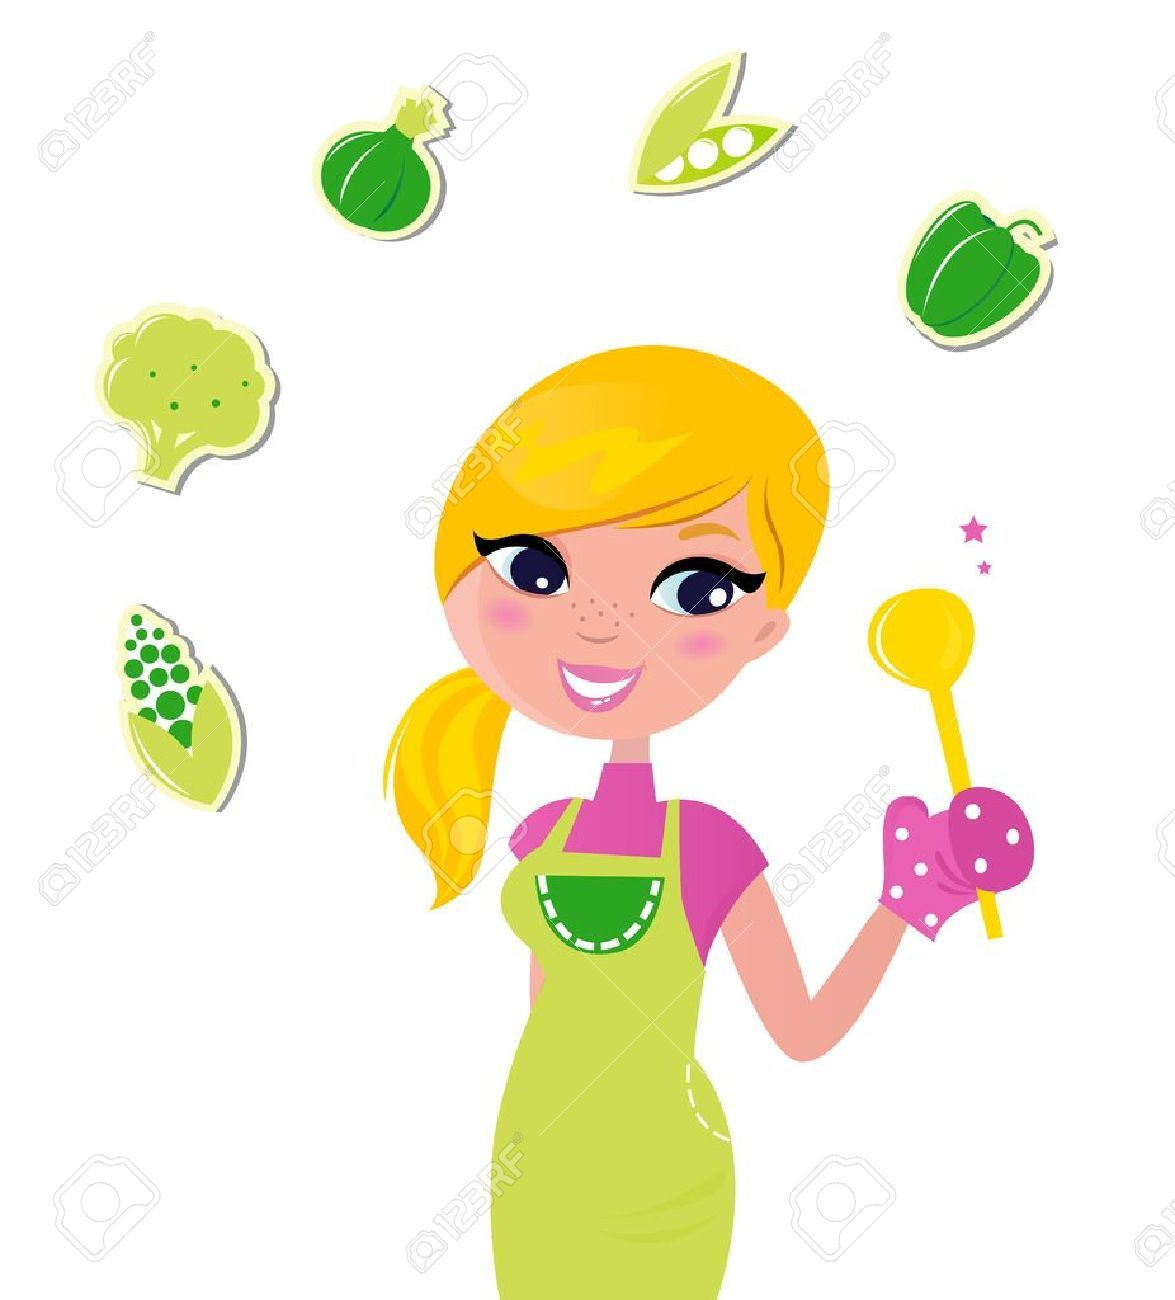 Healthy girl clipart image download Healthy girl clipart 7 » Clipart Portal image download